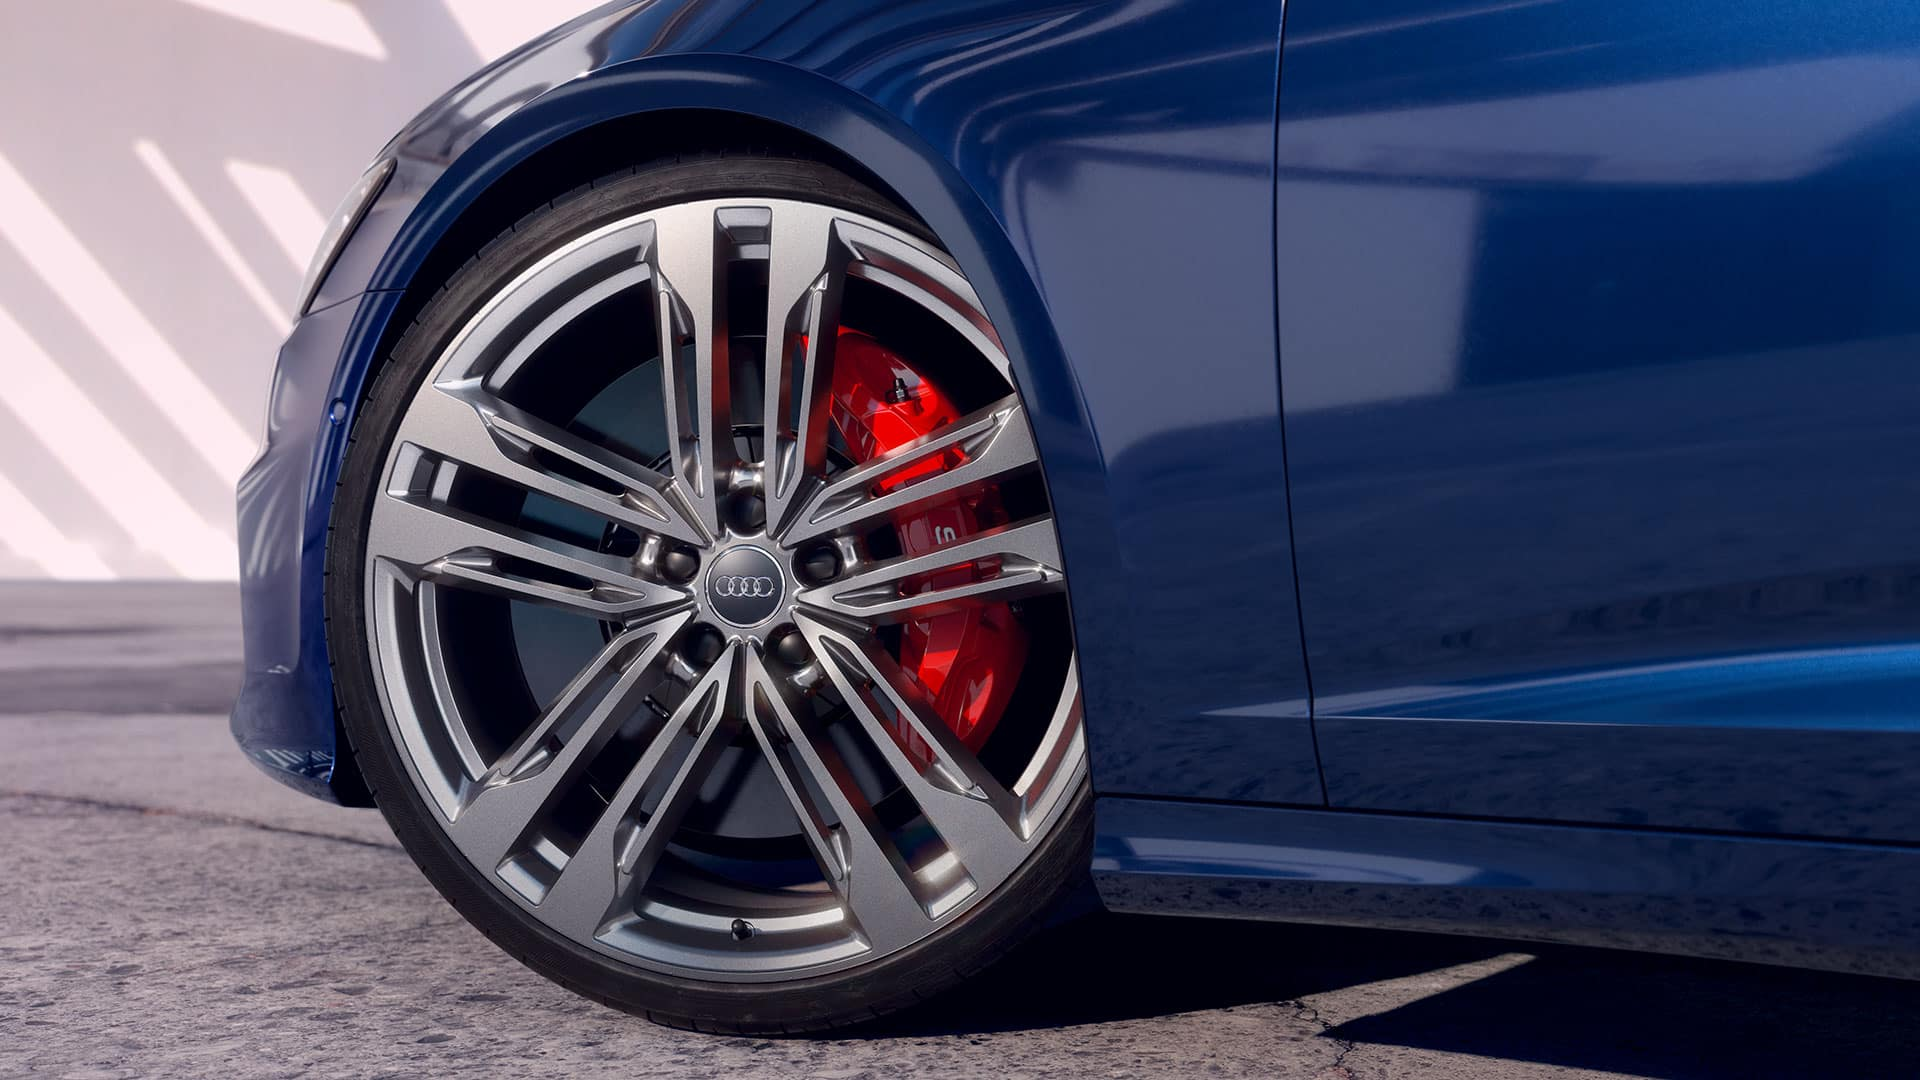 Wheels and calipers Audi S6 Avant